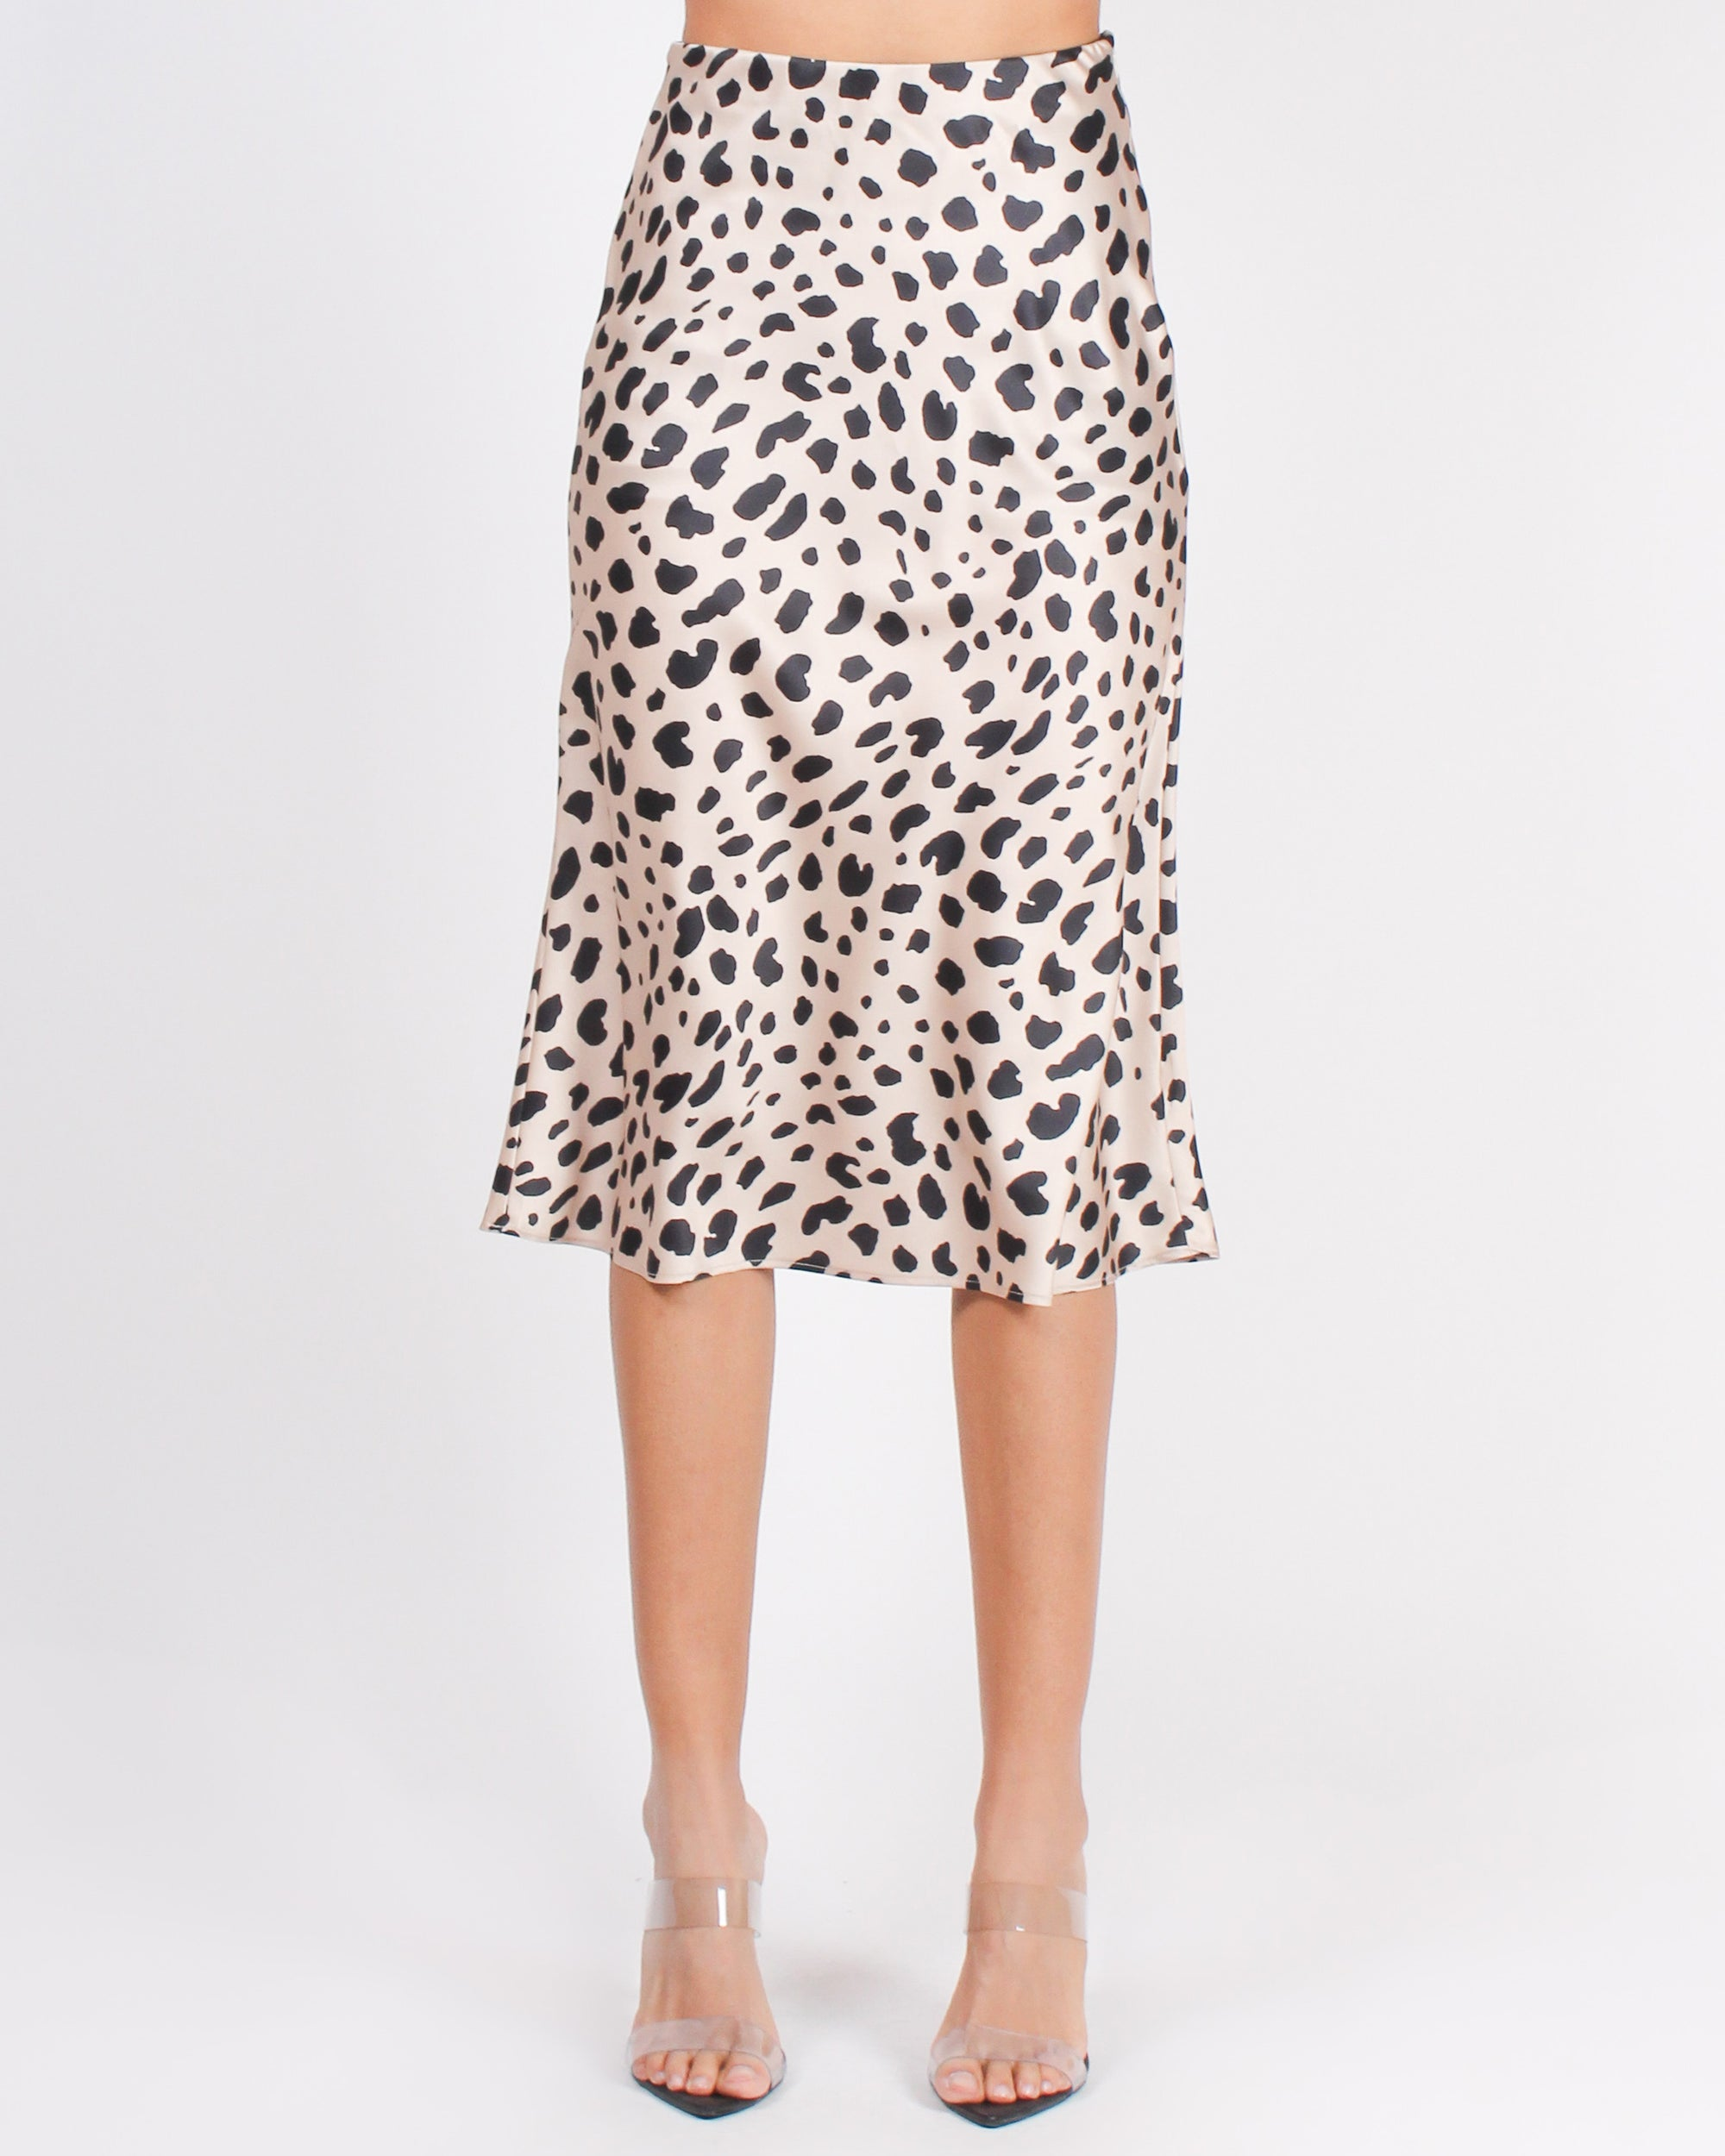 Fashion Q Shop Q Attract What You Want Cheetah Midi Skirt (Leopard) LS50962S